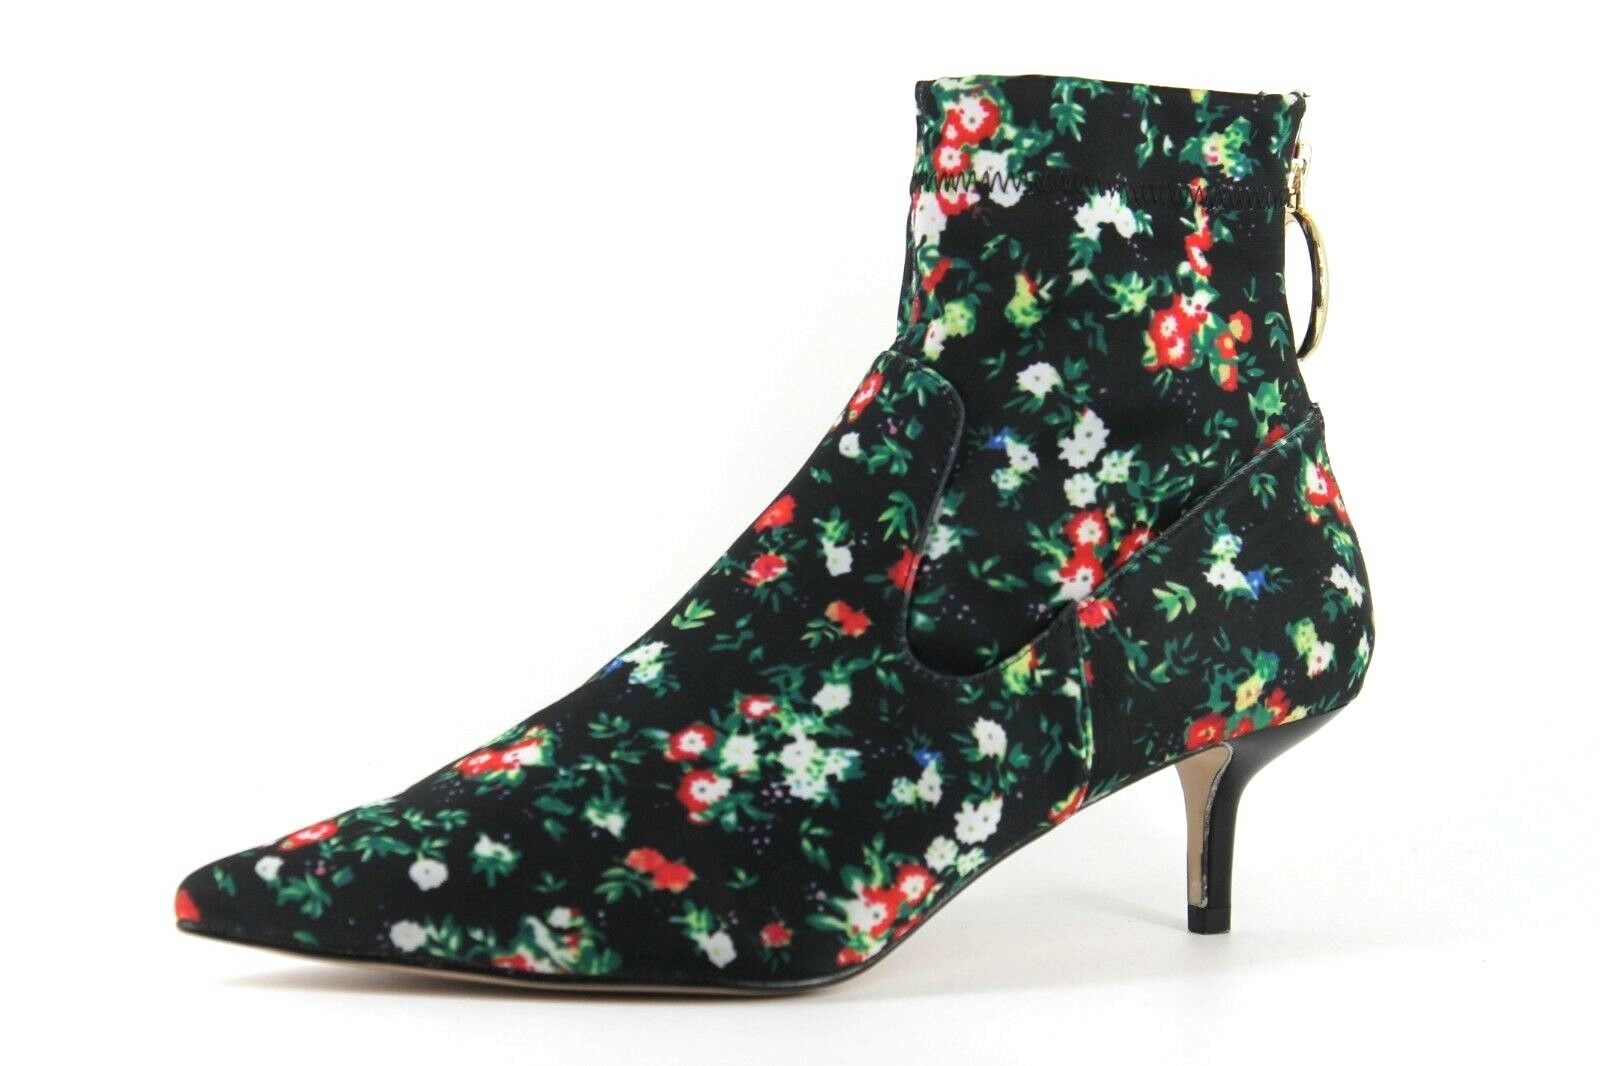 H&M Womens Green Floral Kitten Heel Pointed Toe Zip Up Ankle Boots